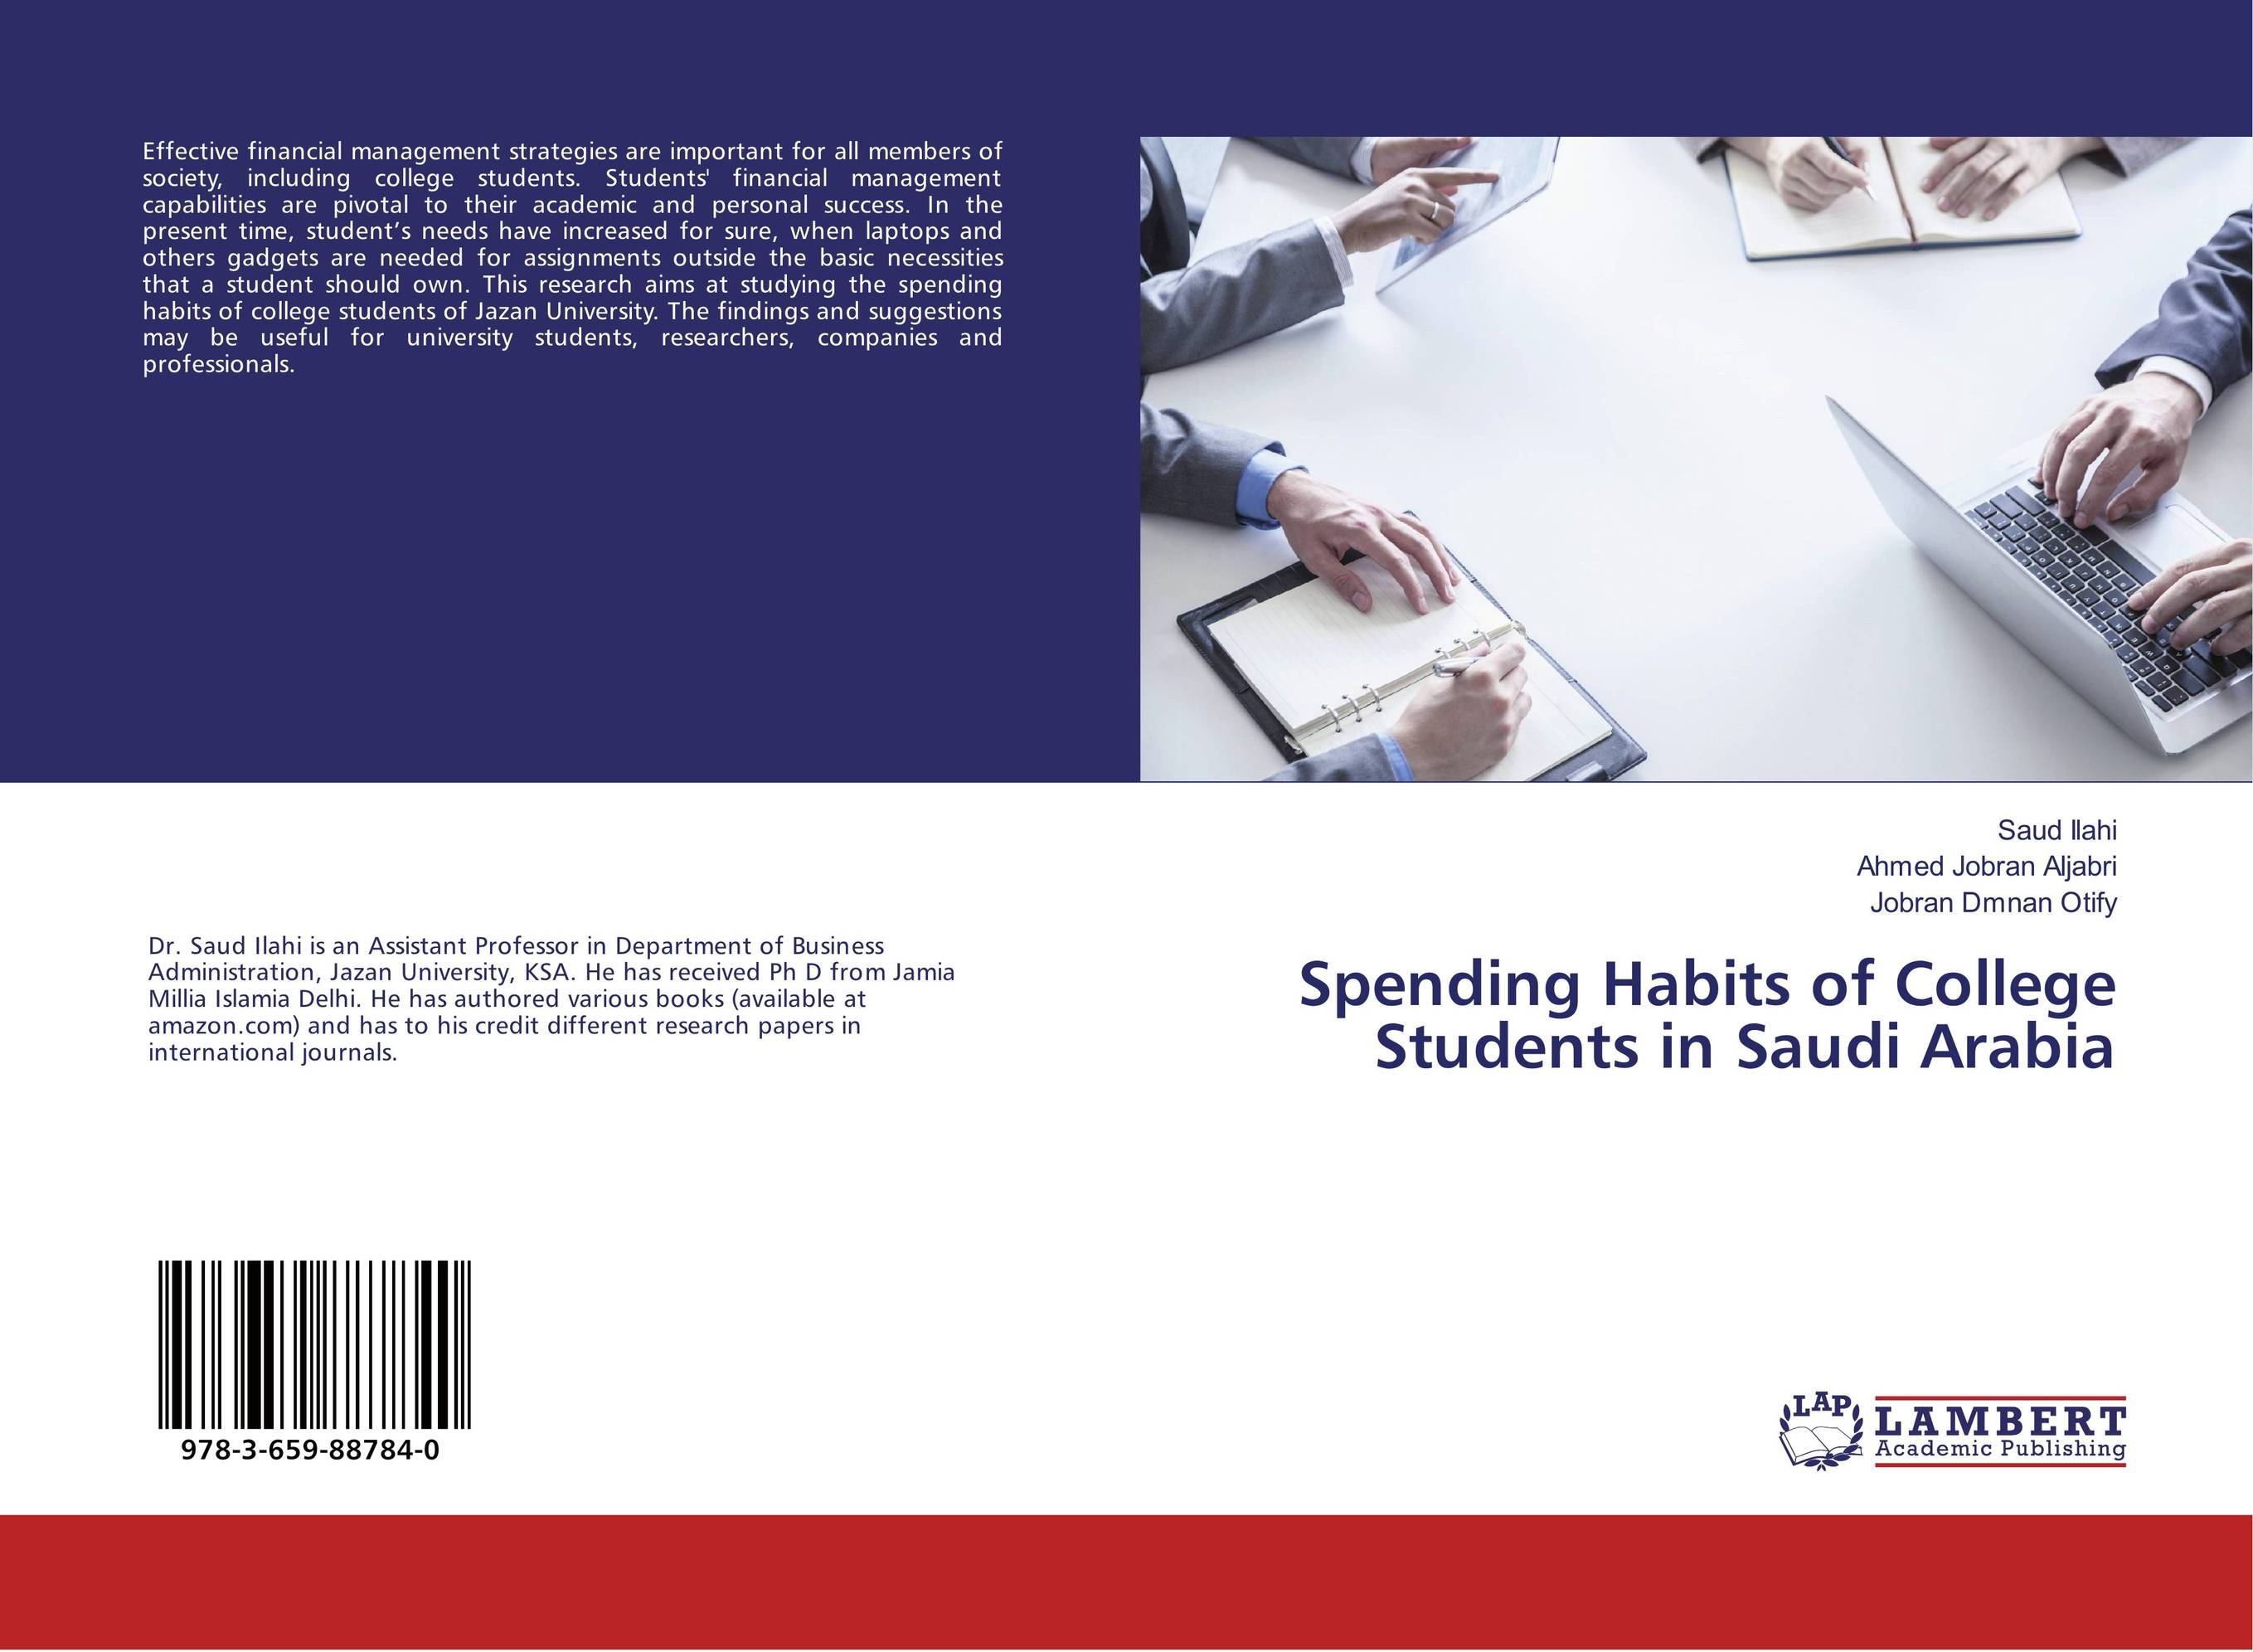 Spending Habits of College Students in Saudi Arabia